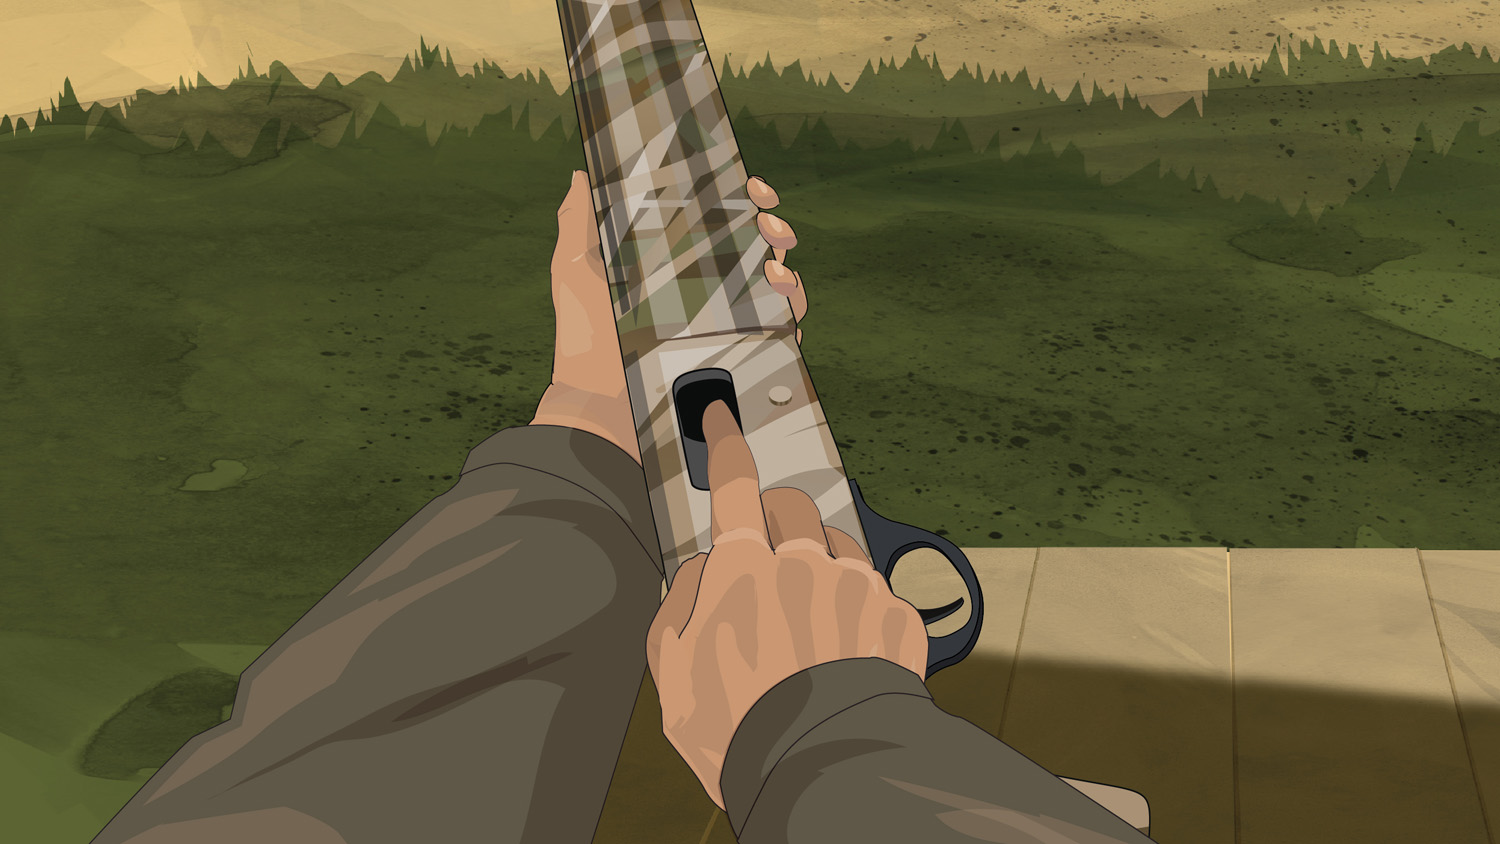 Illustration of a hunter's finger checking a semi-automatic action shotgun's feeding path for ammunition or obstructions.